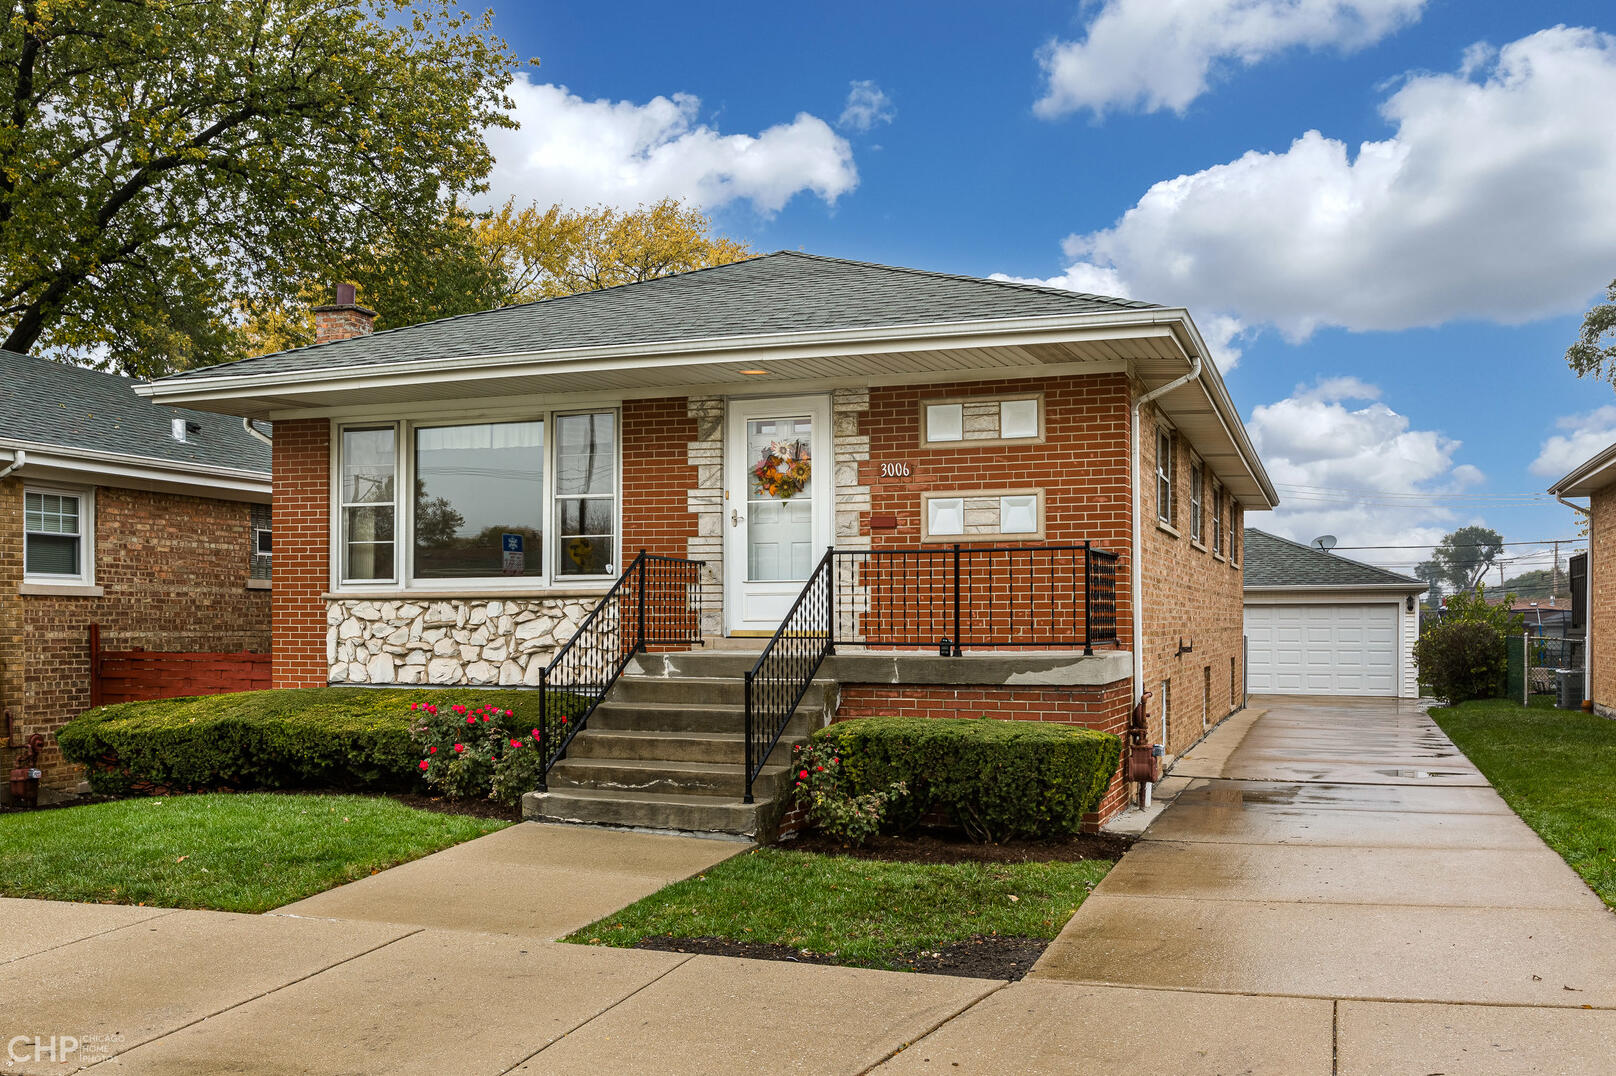 Photo of 3006 103rd Chicago IL 60655